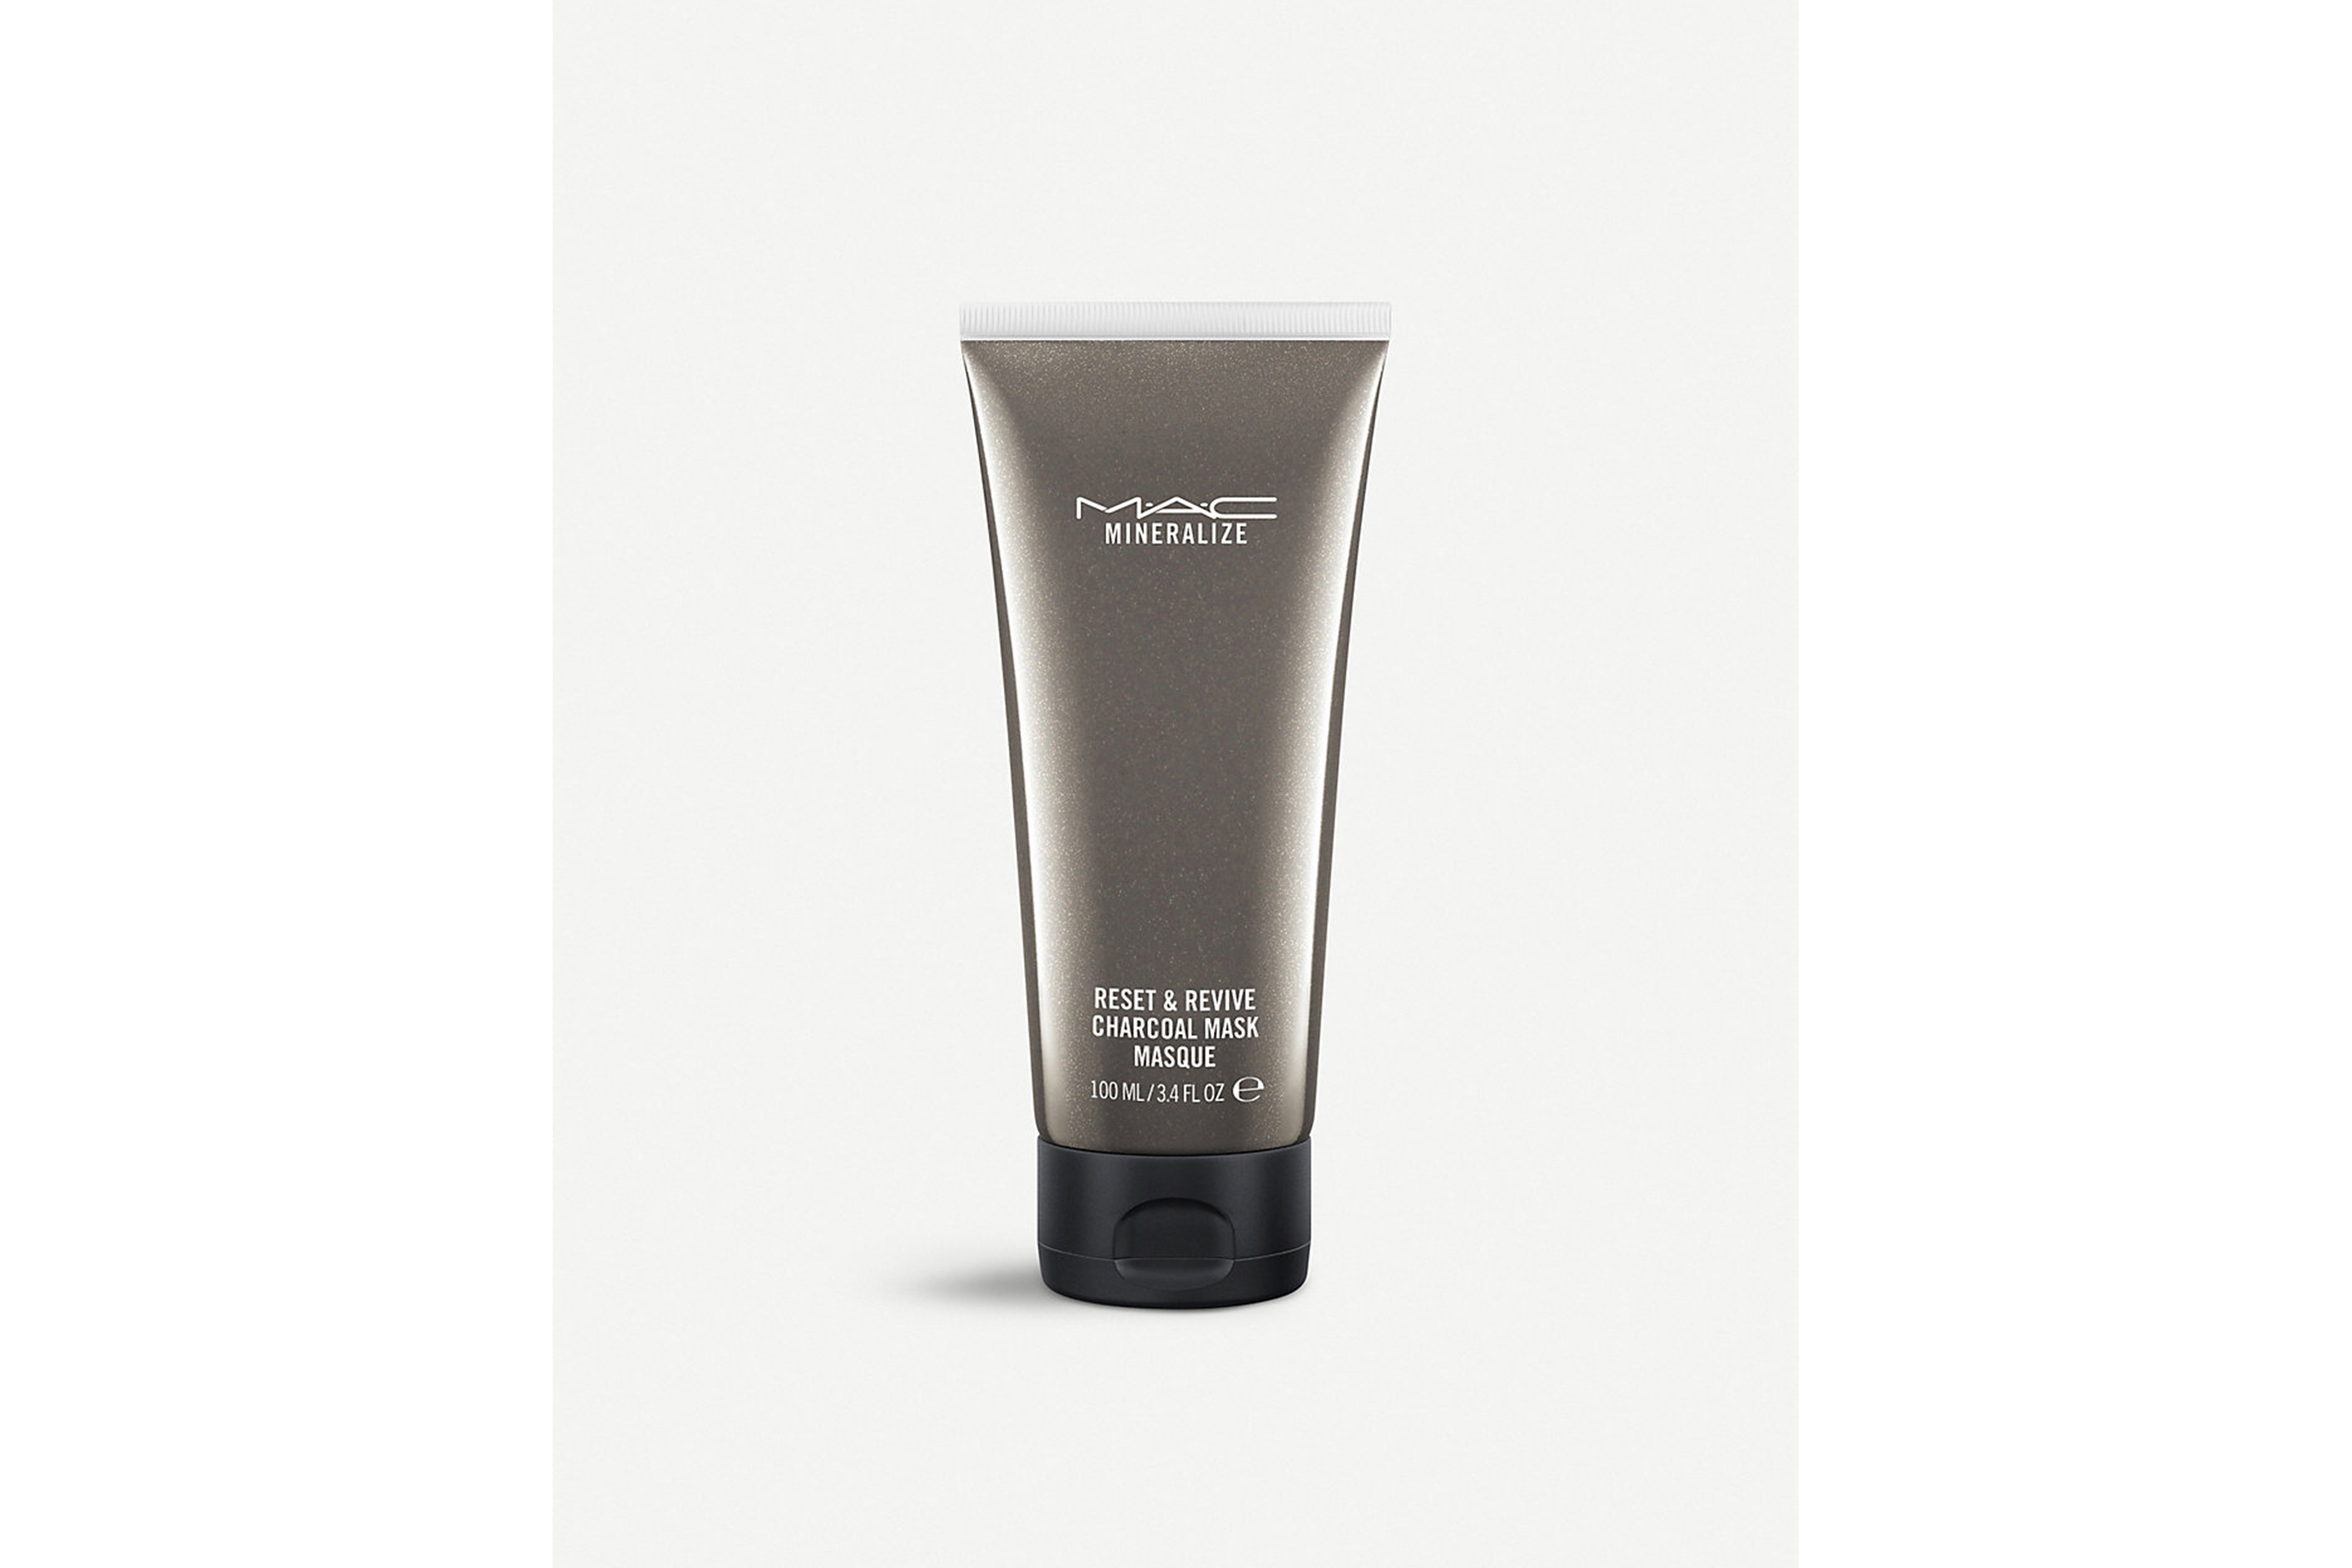 mac MINERALIZE RESET & REVIVE CHARCOAL MASK